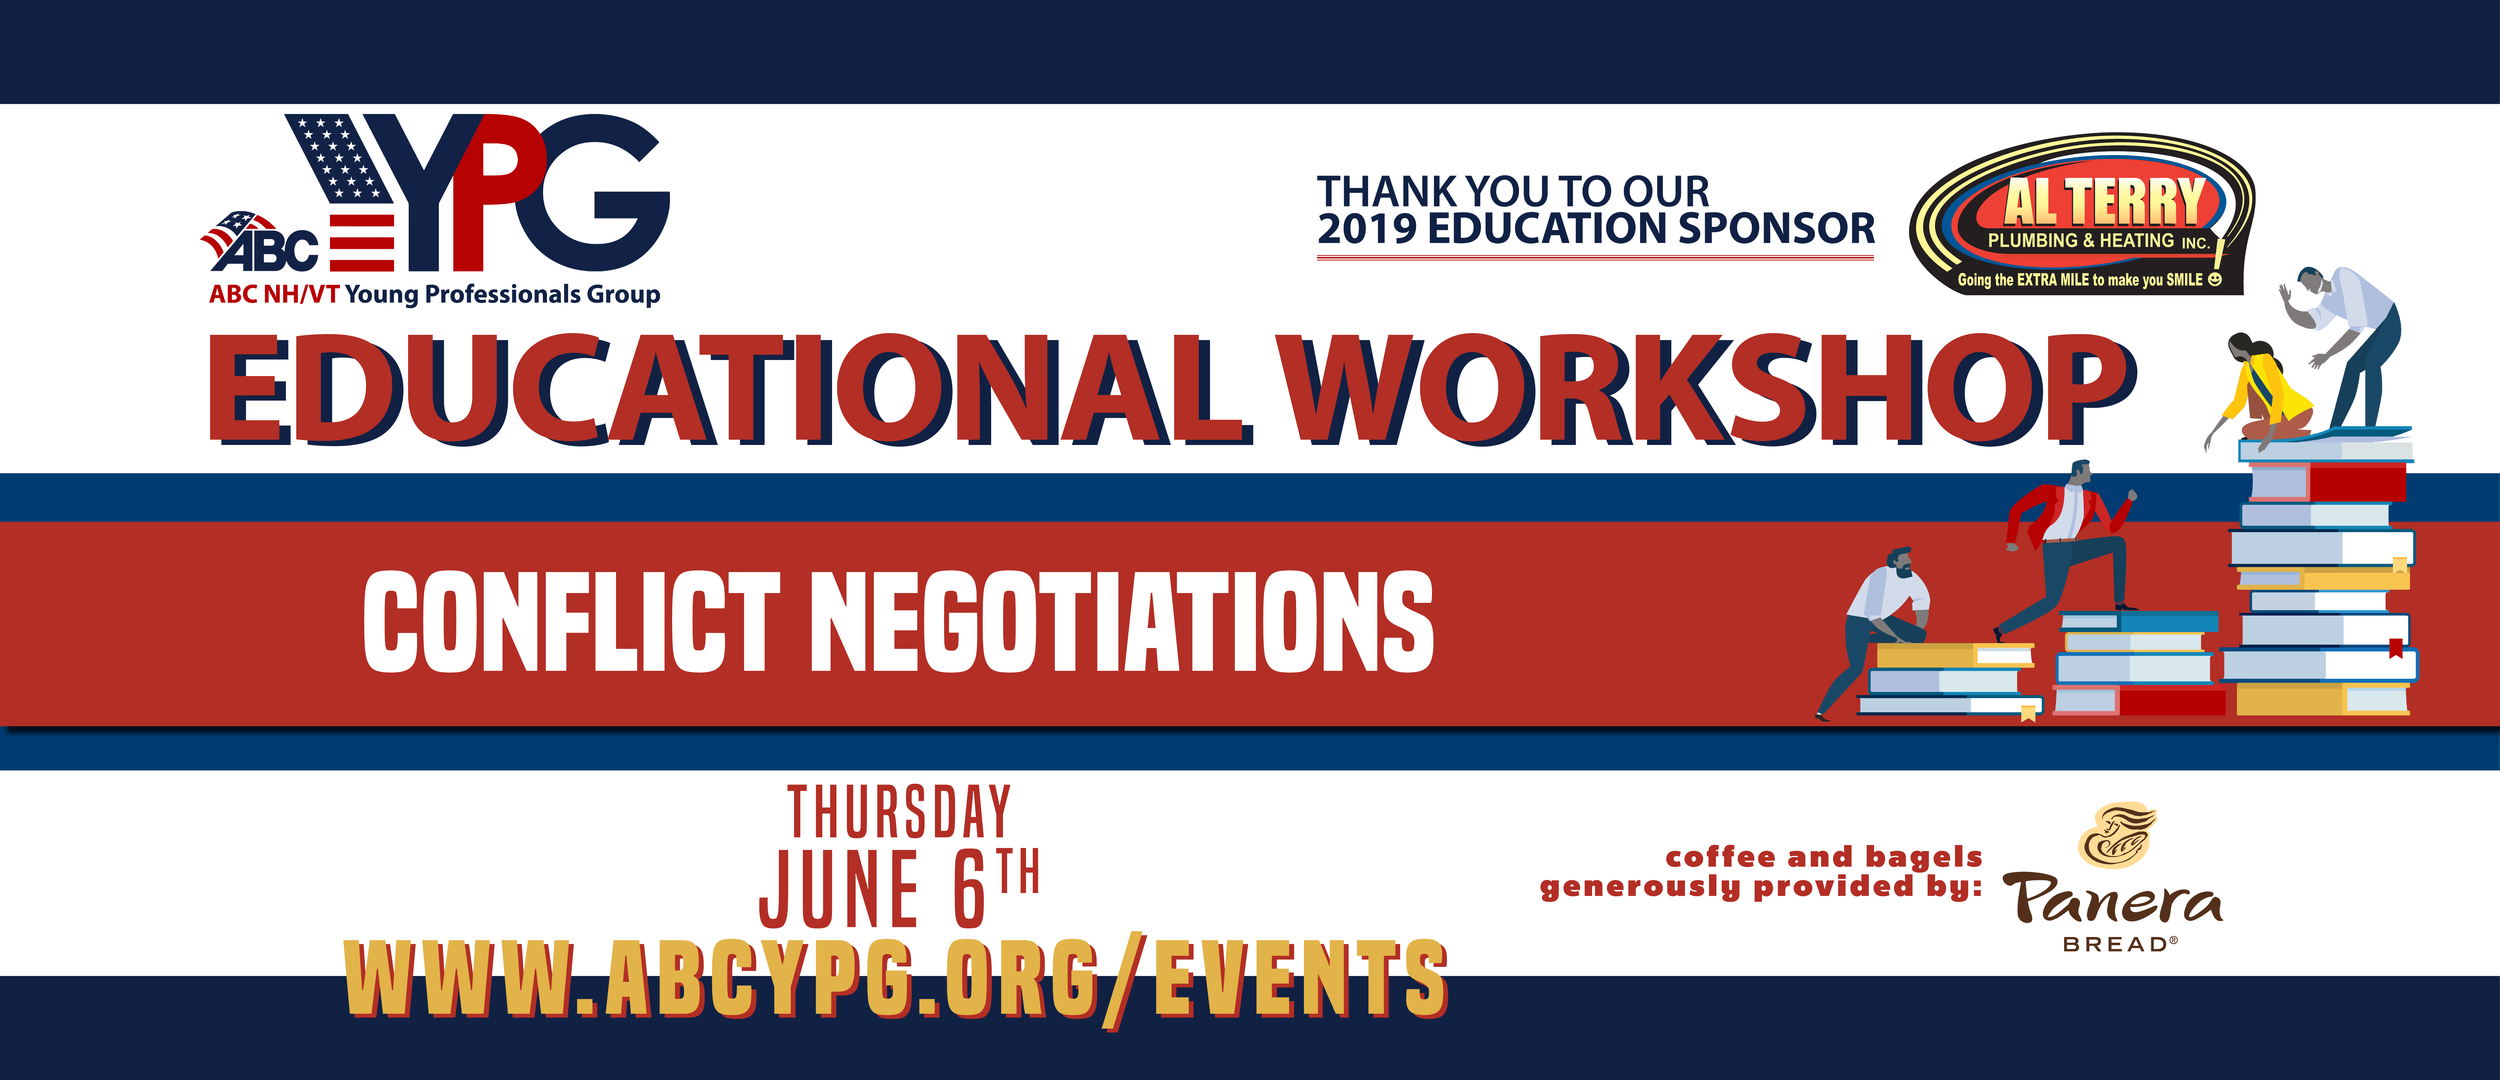 2019-06 Educational Workshop - Conflict Negotiations - WEB MEDIA.png